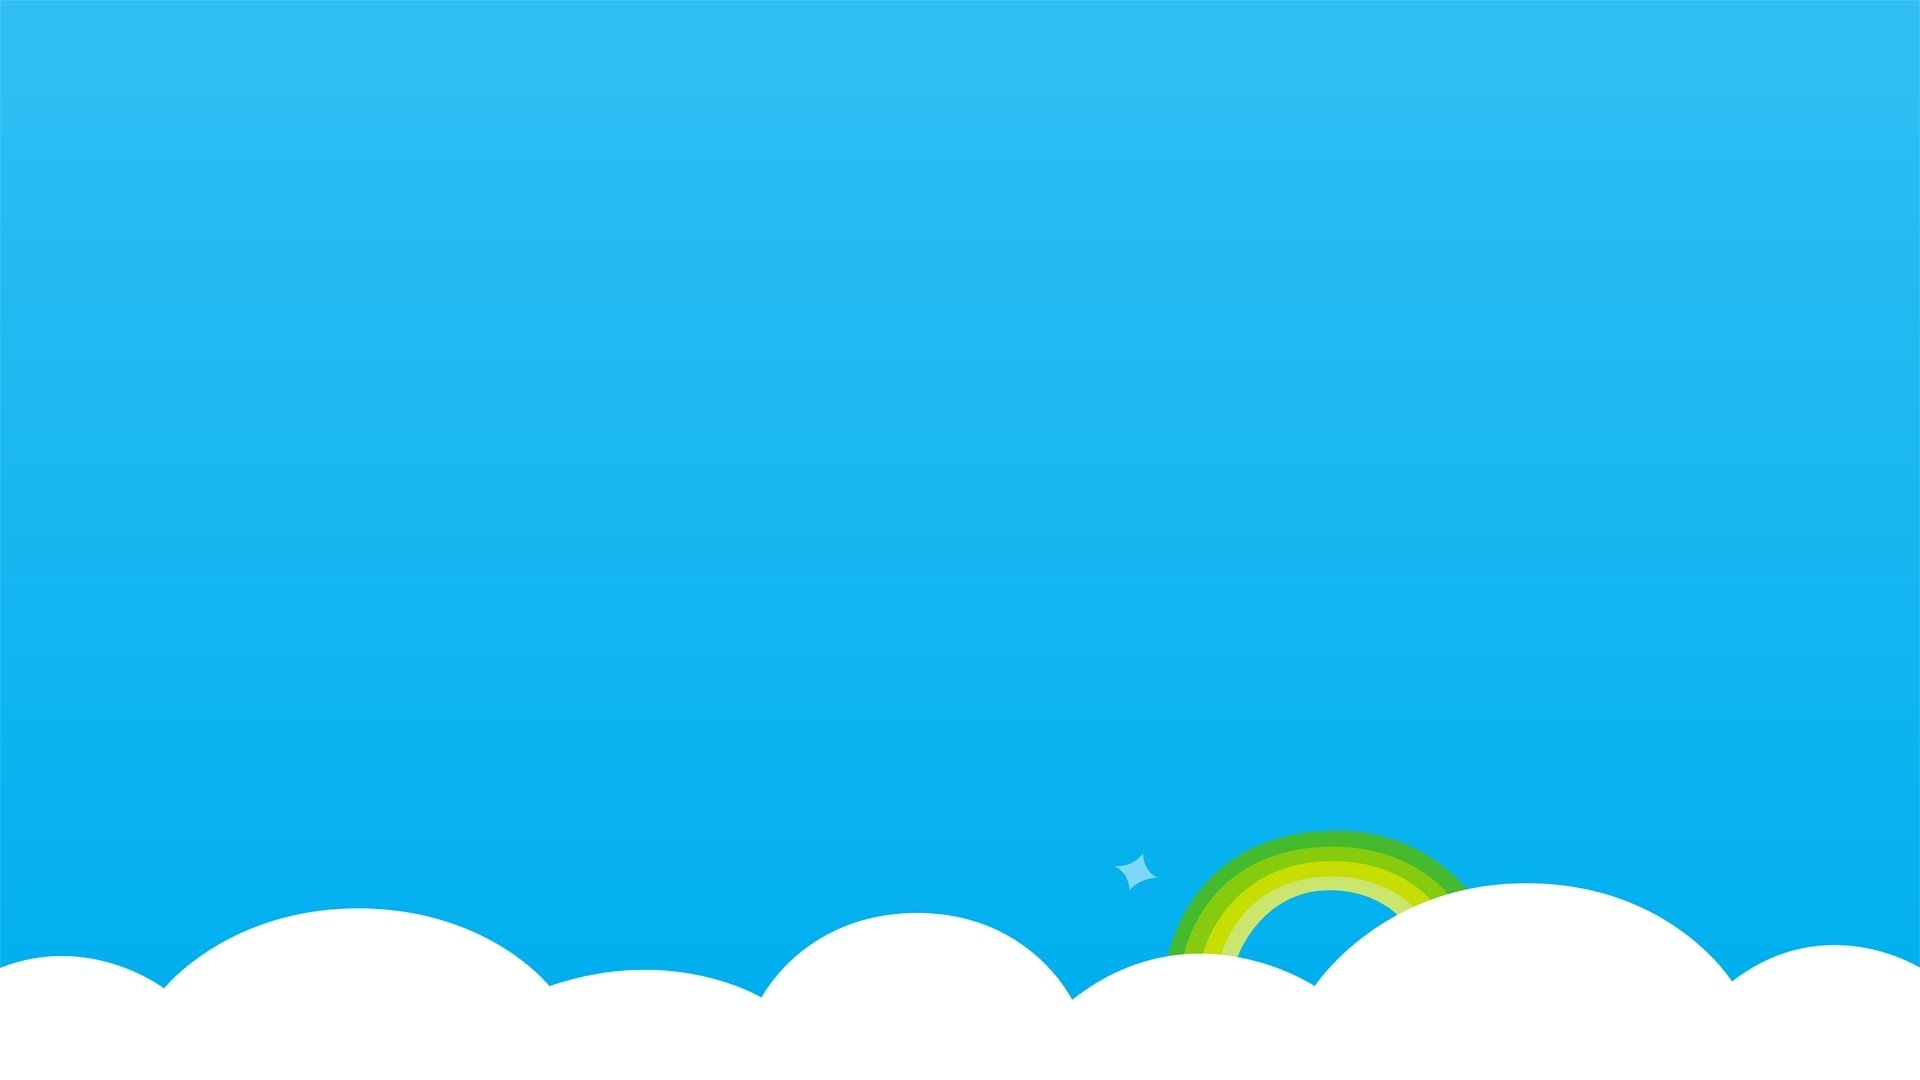 Skype Full HD Wallpaper and Background Image | 1920x1080